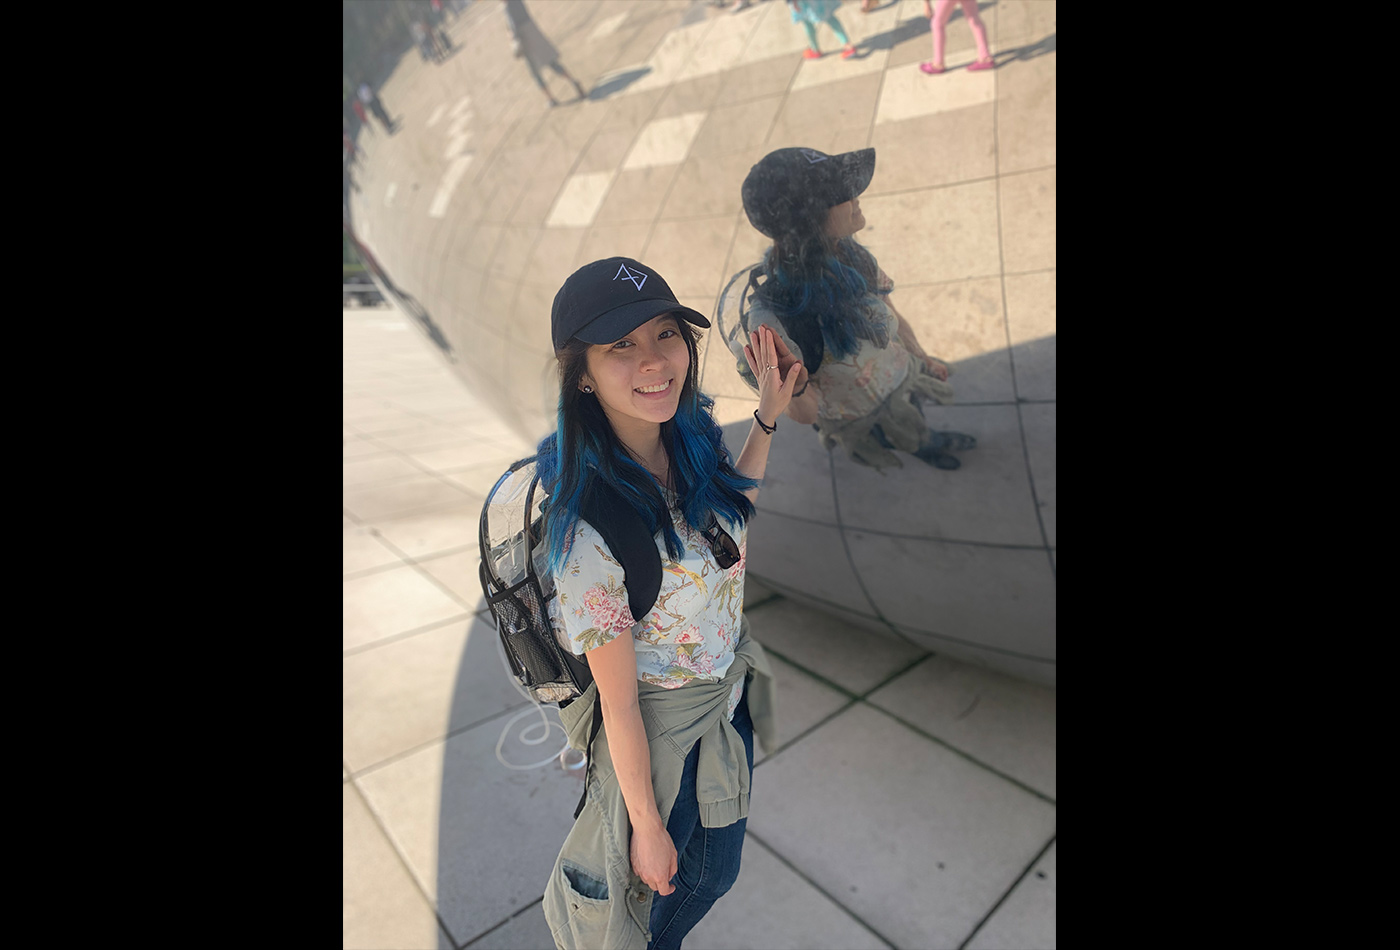 A female graduate student smiles beside the landmark Chicago silver bean.